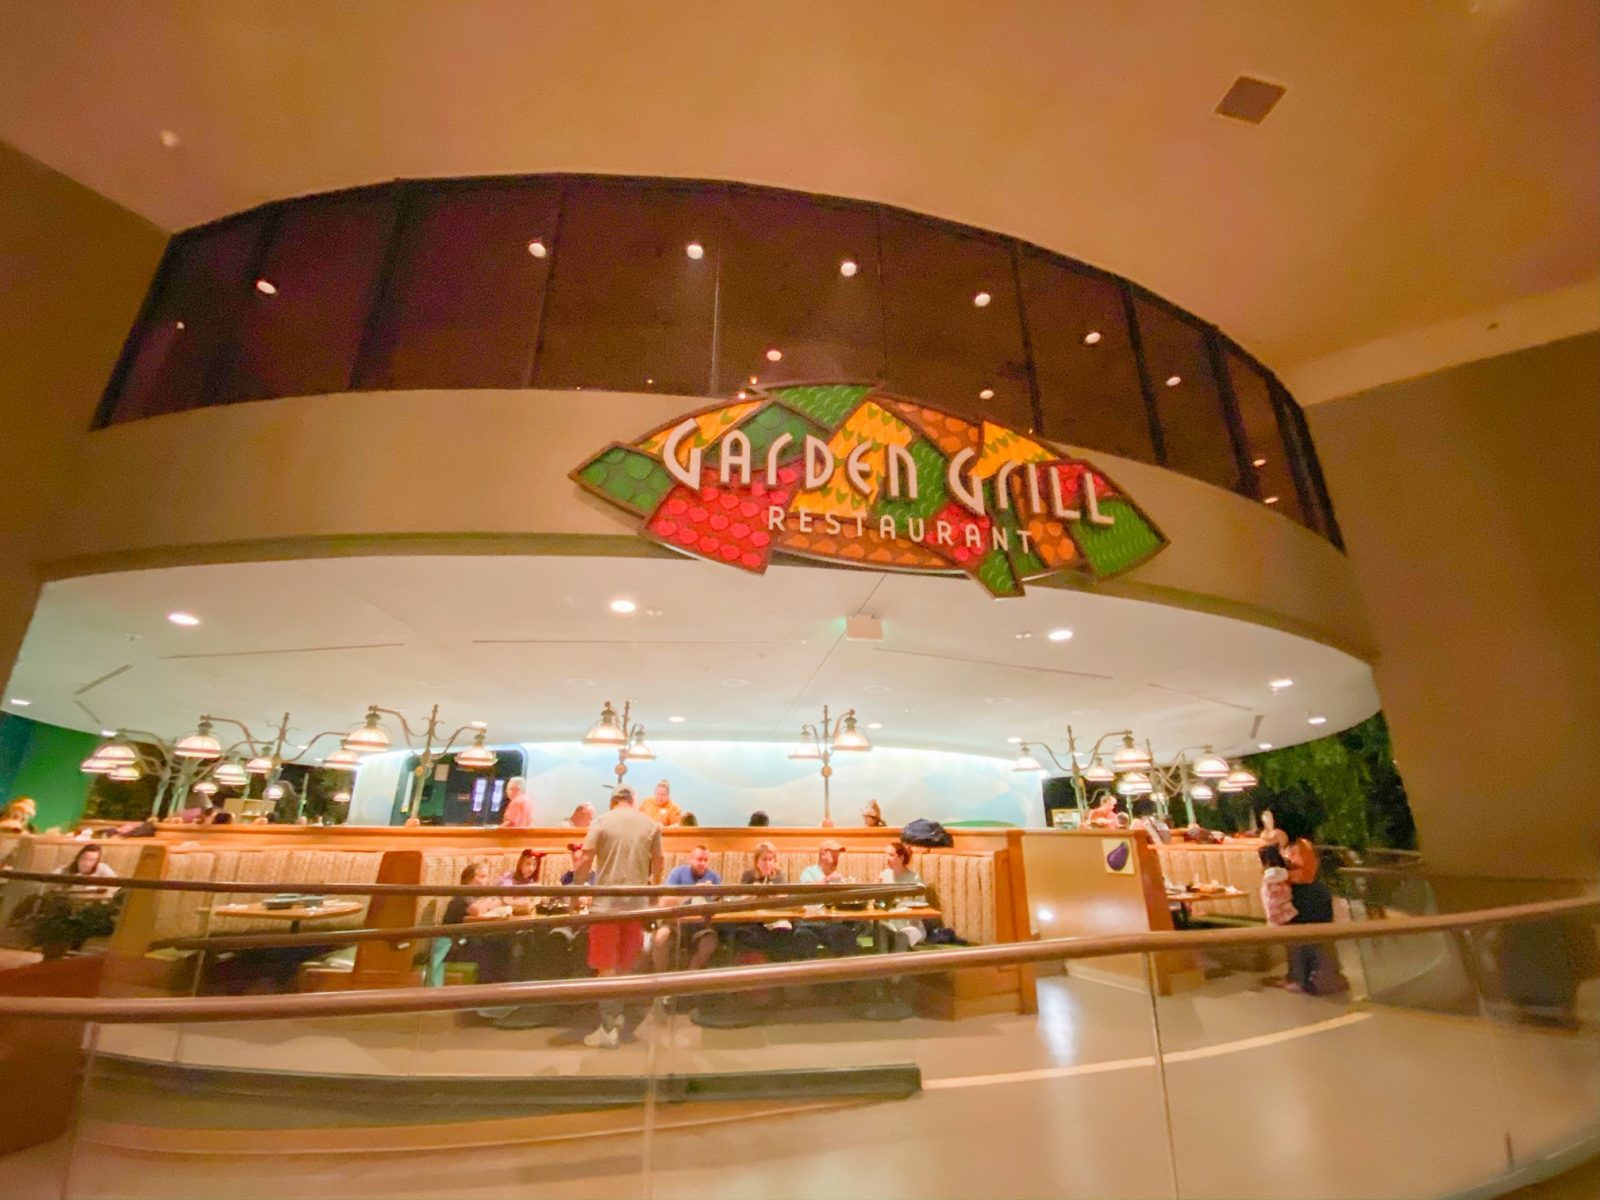 exterior view of Garden Grill restaurant at Epcot